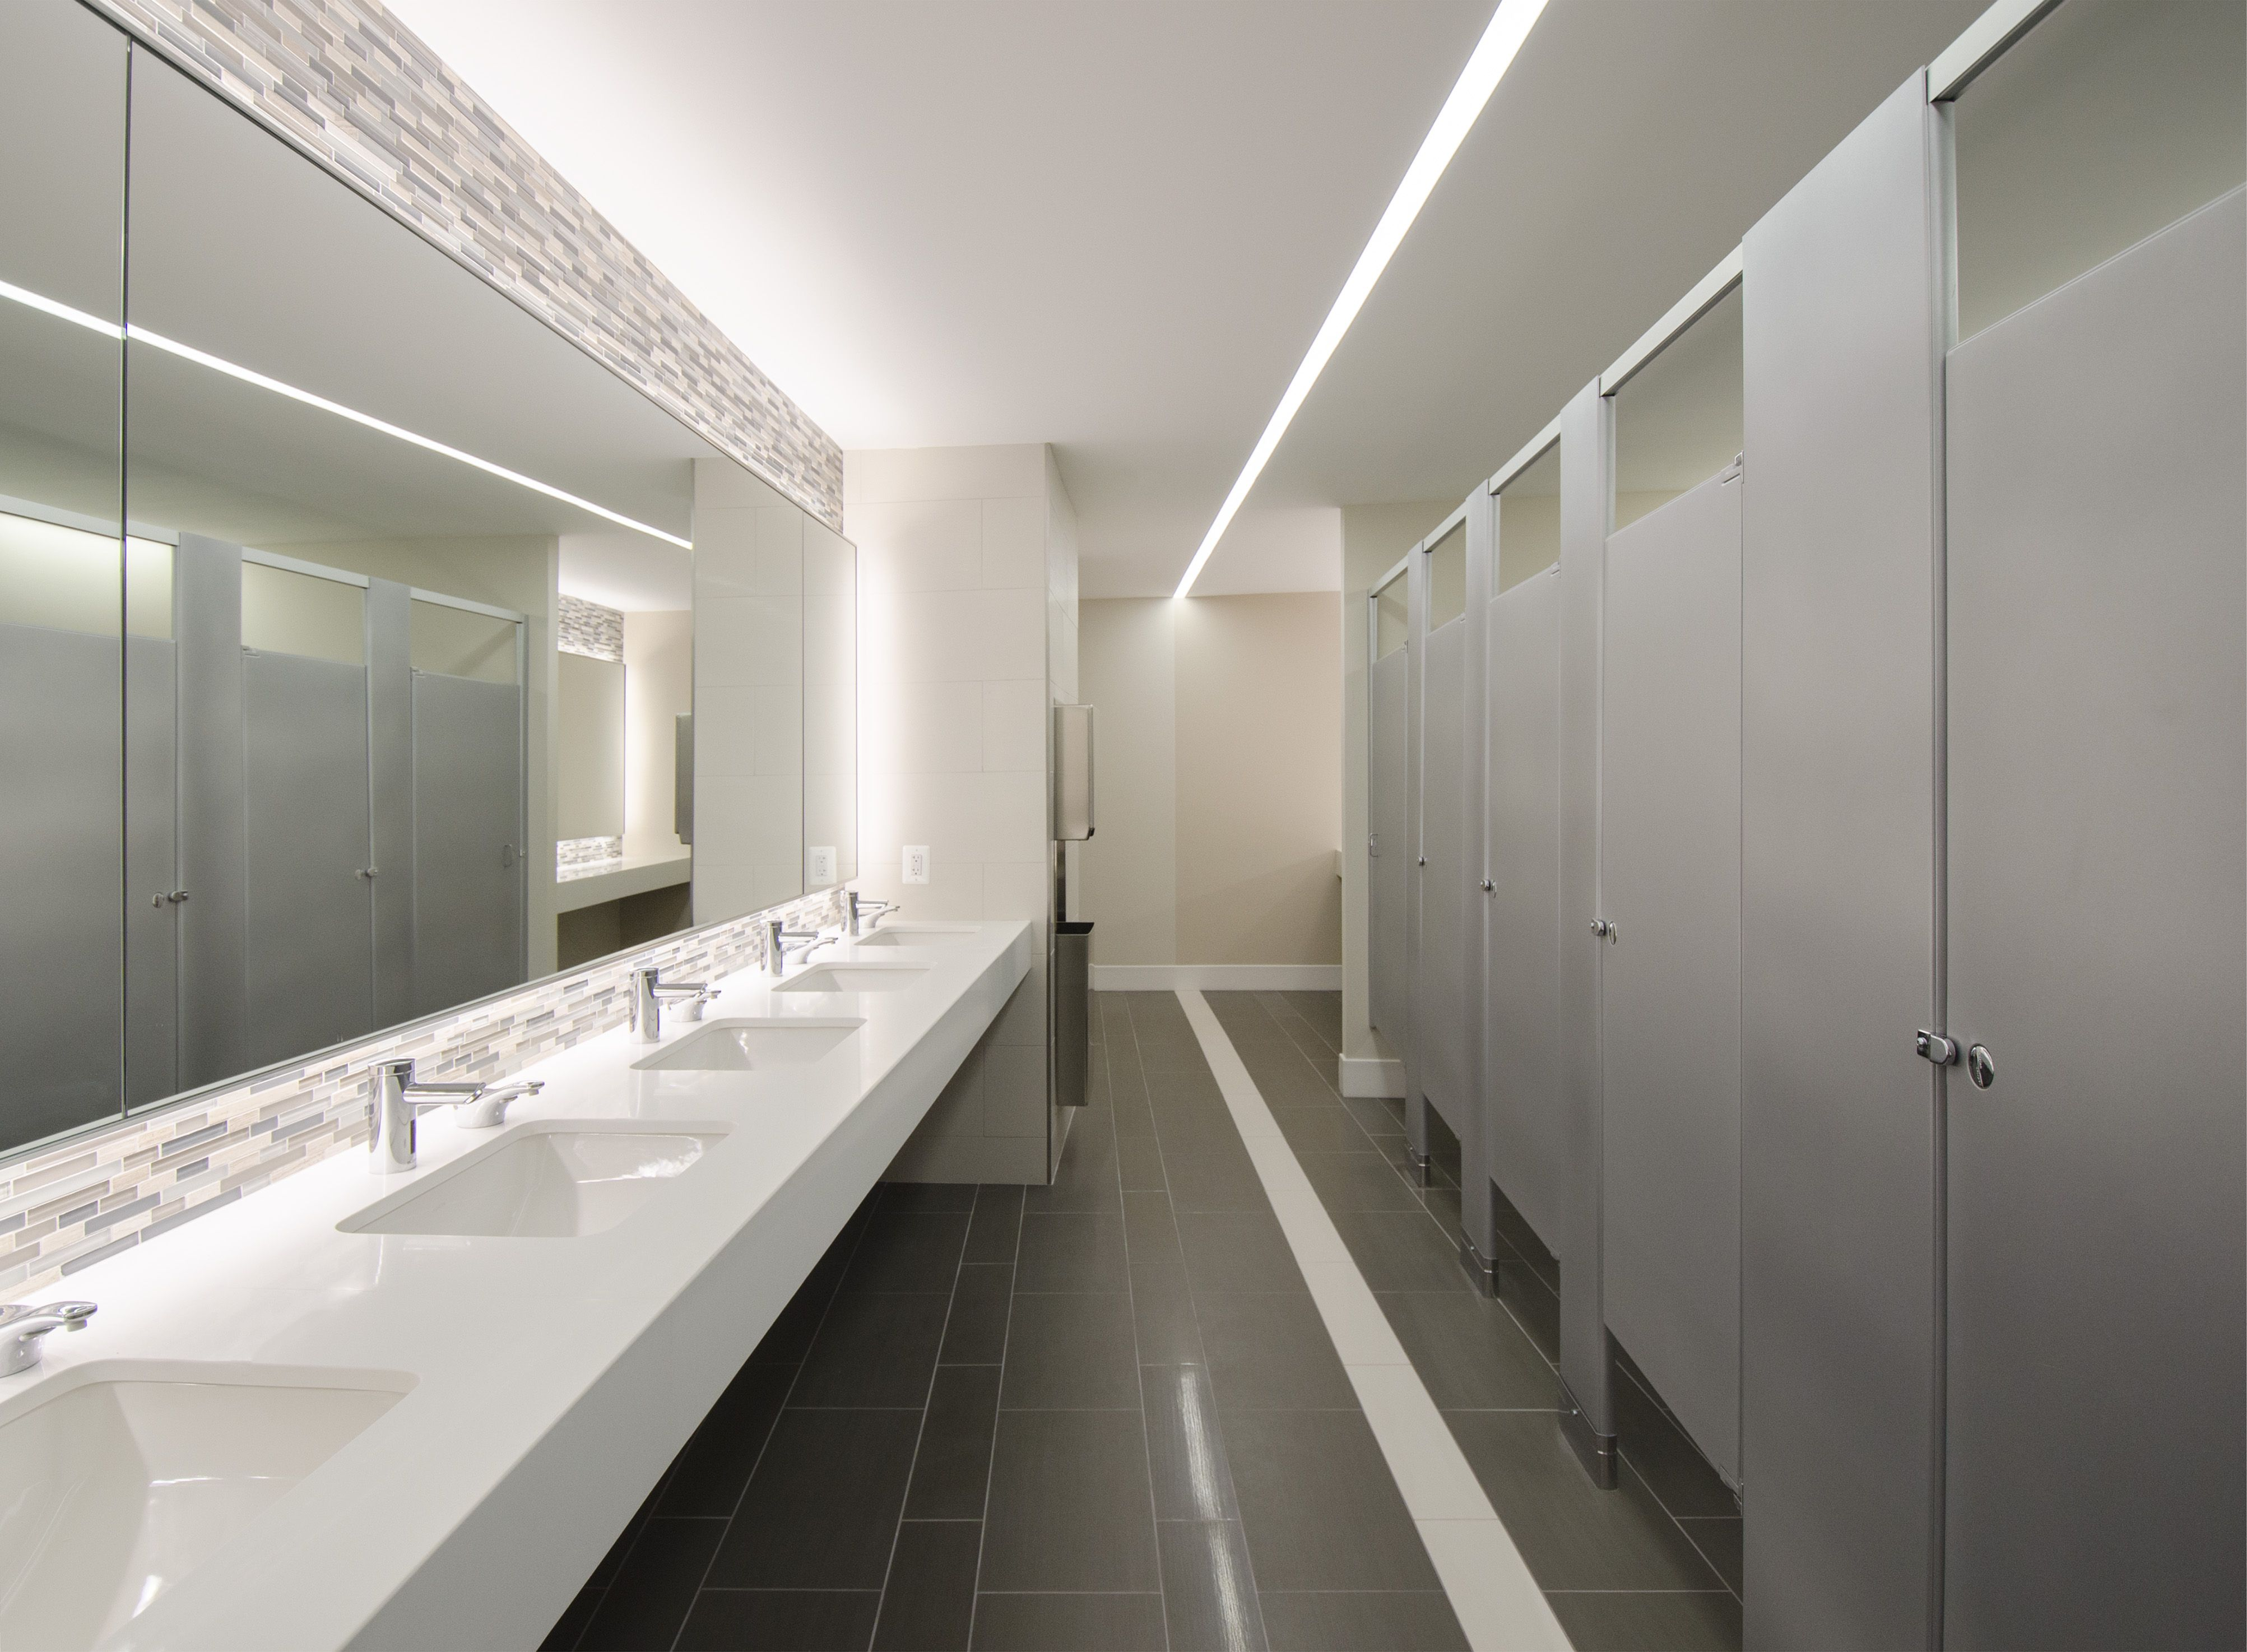 Commercial bathroom flooring tiles gurus floor for Office bathroom designs